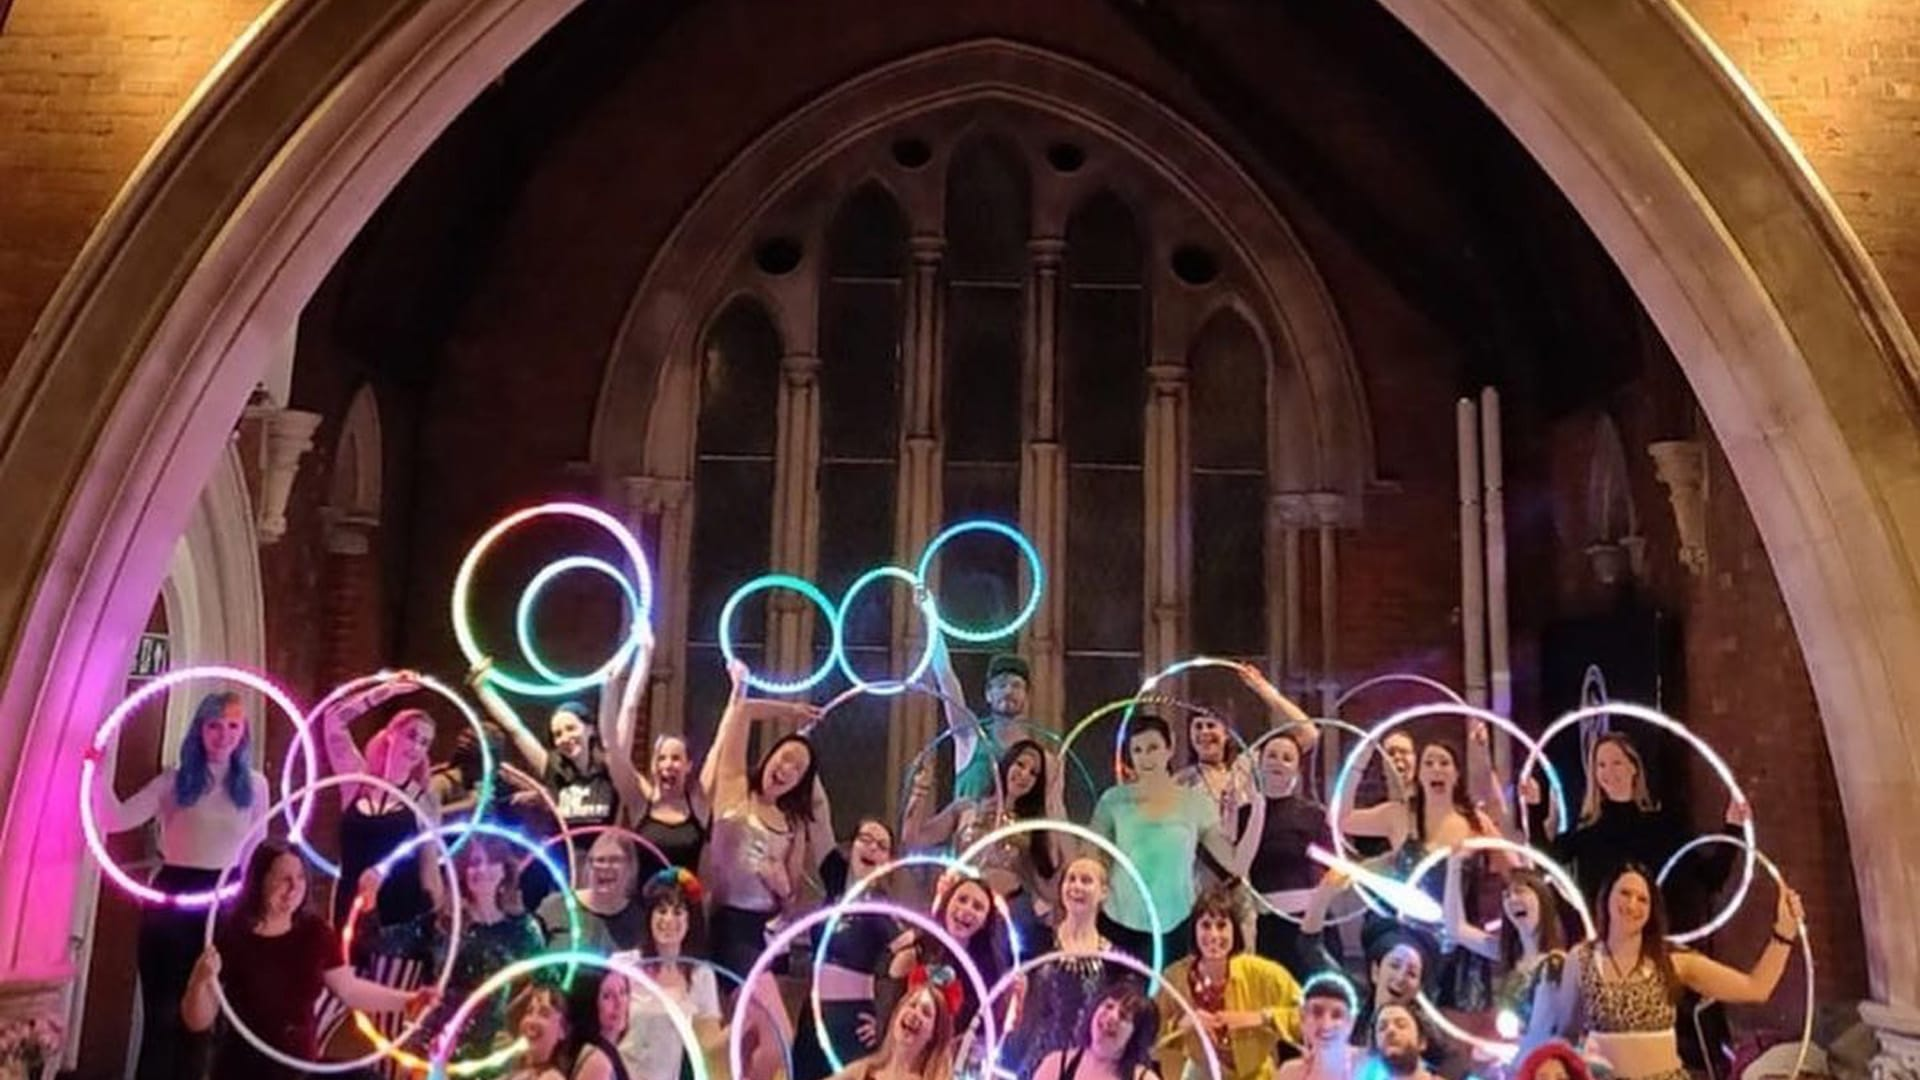 A large group of people holding light up hoops